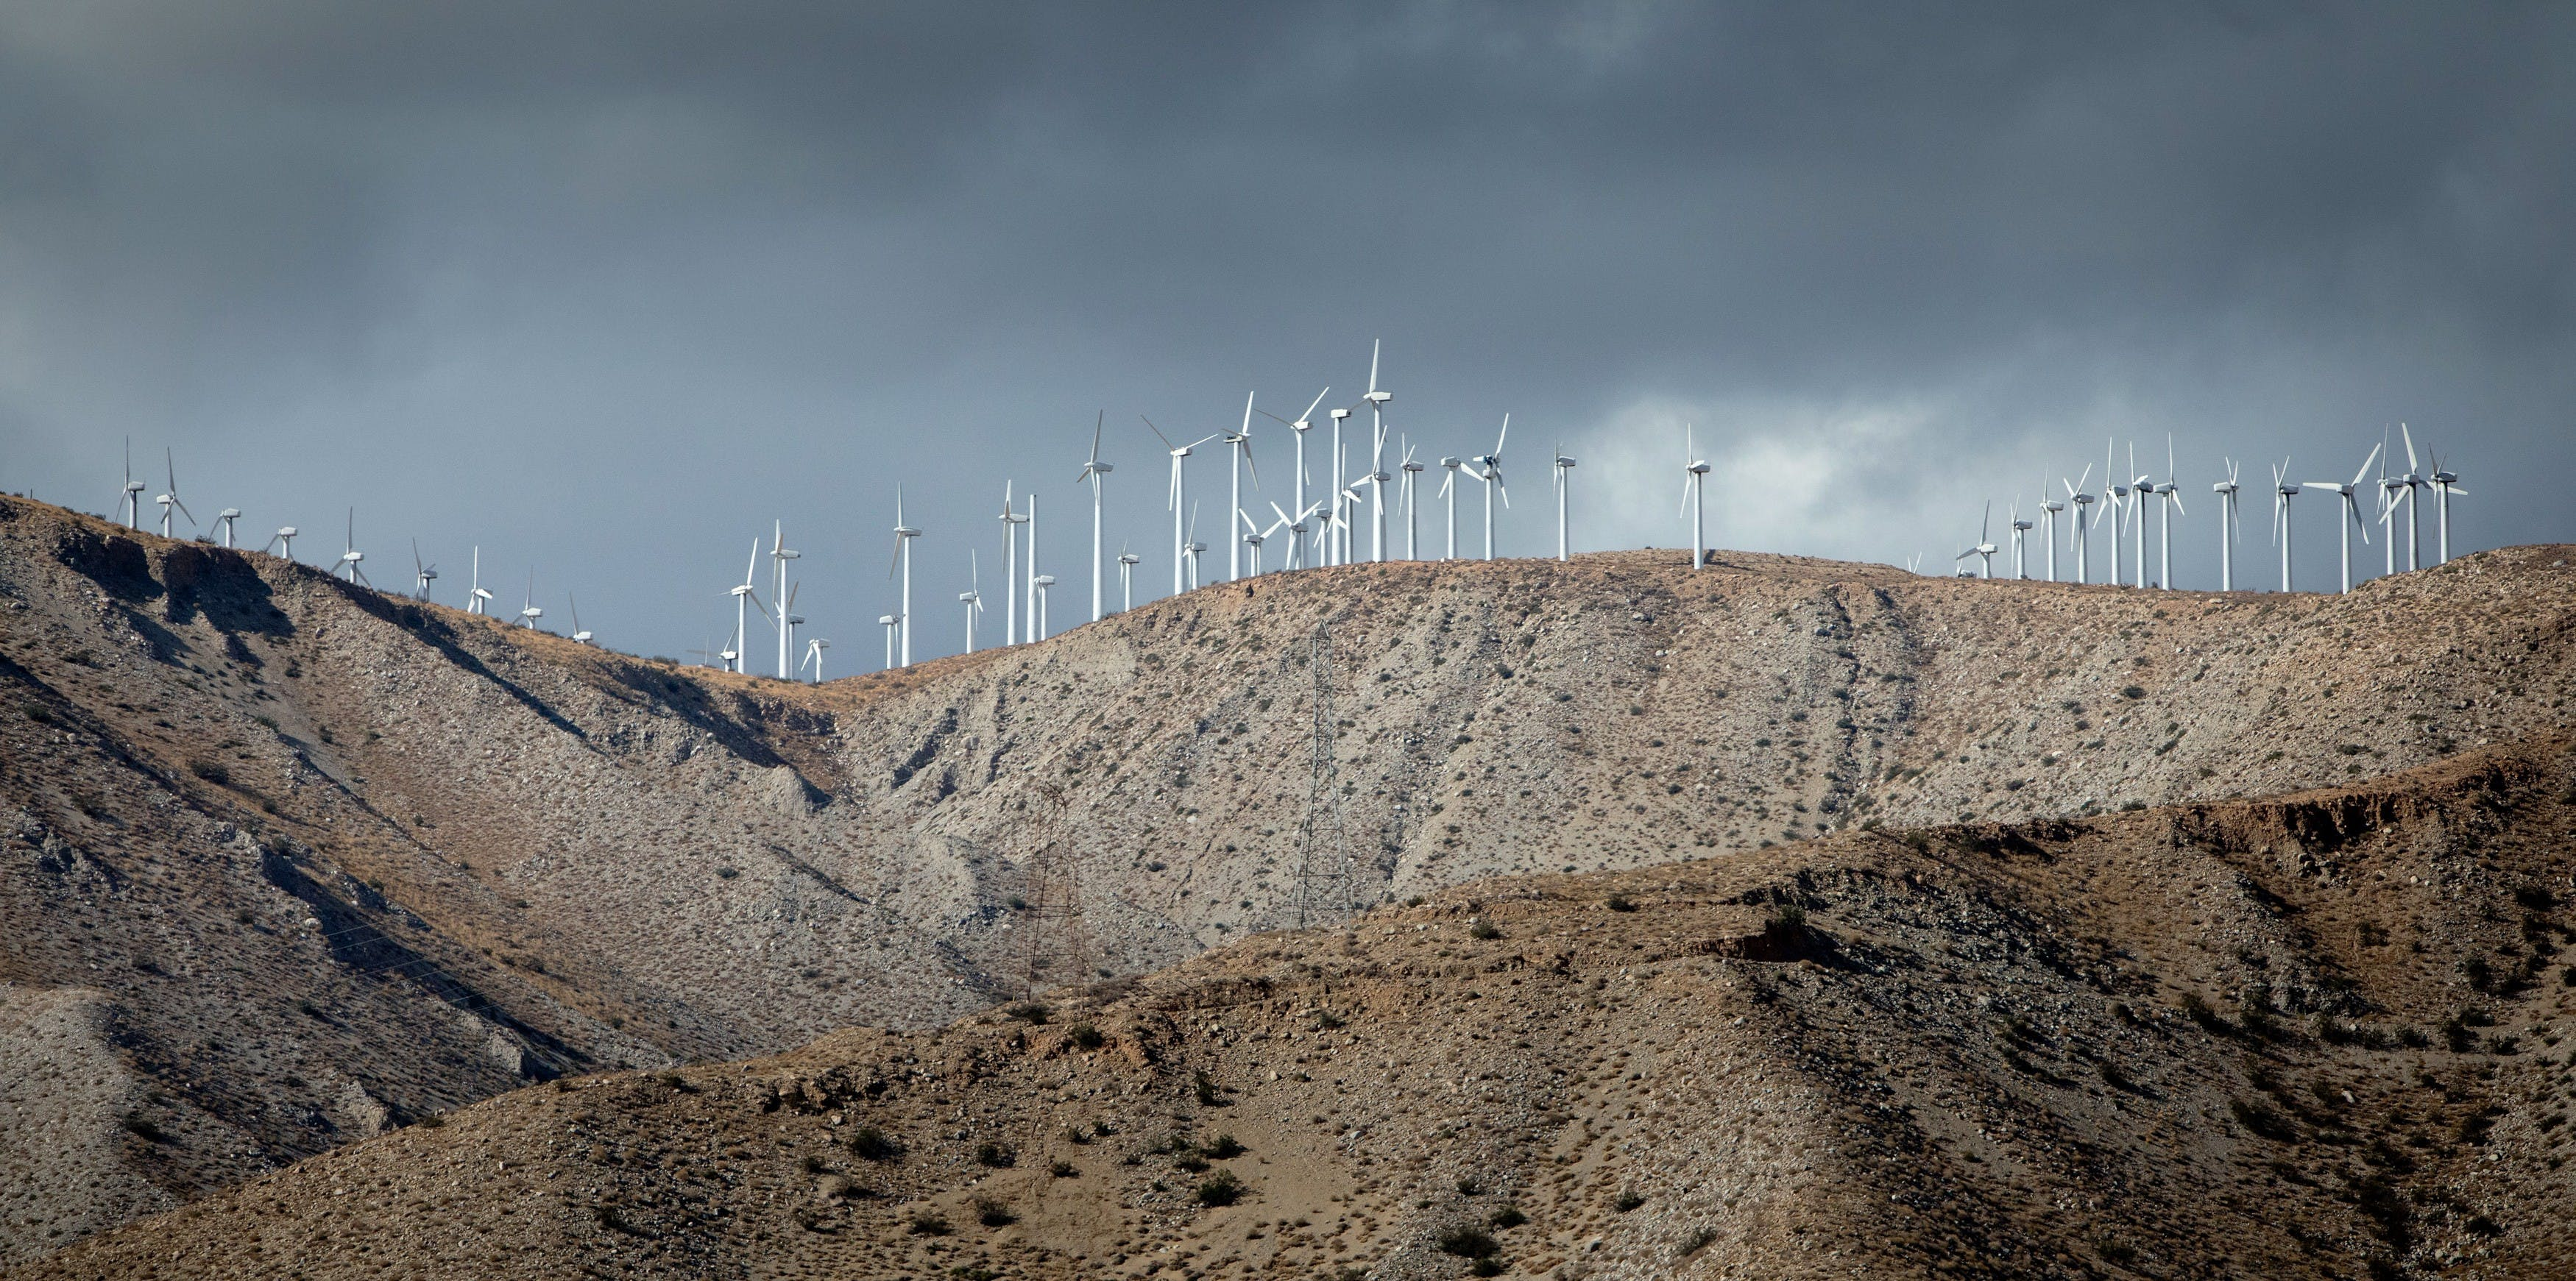 Countless wind turbines at the San Gorgonio Pass Wind Farm delivering 615 MW, in September 2017. | usage worldwide Photo by: Frank Duenzl/picture-alliance/dpa/AP Images